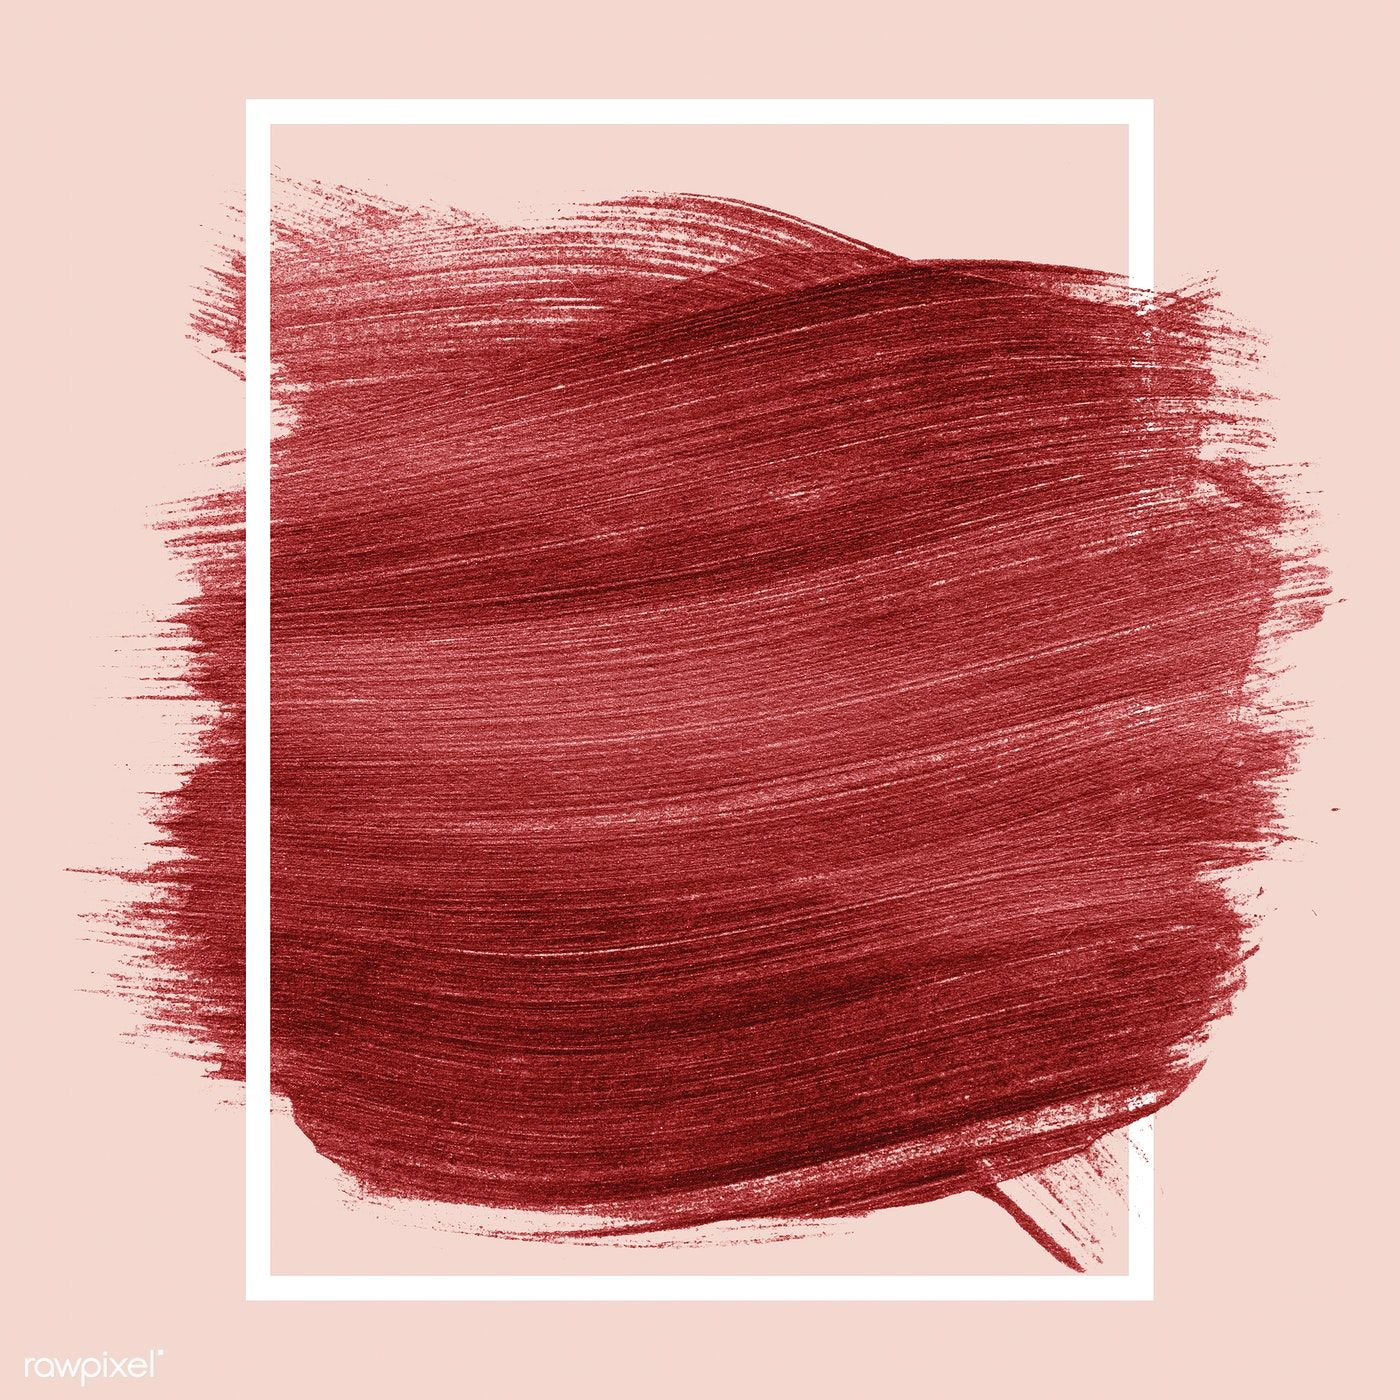 Red shimmery brush stroke badge free image by rawpixel